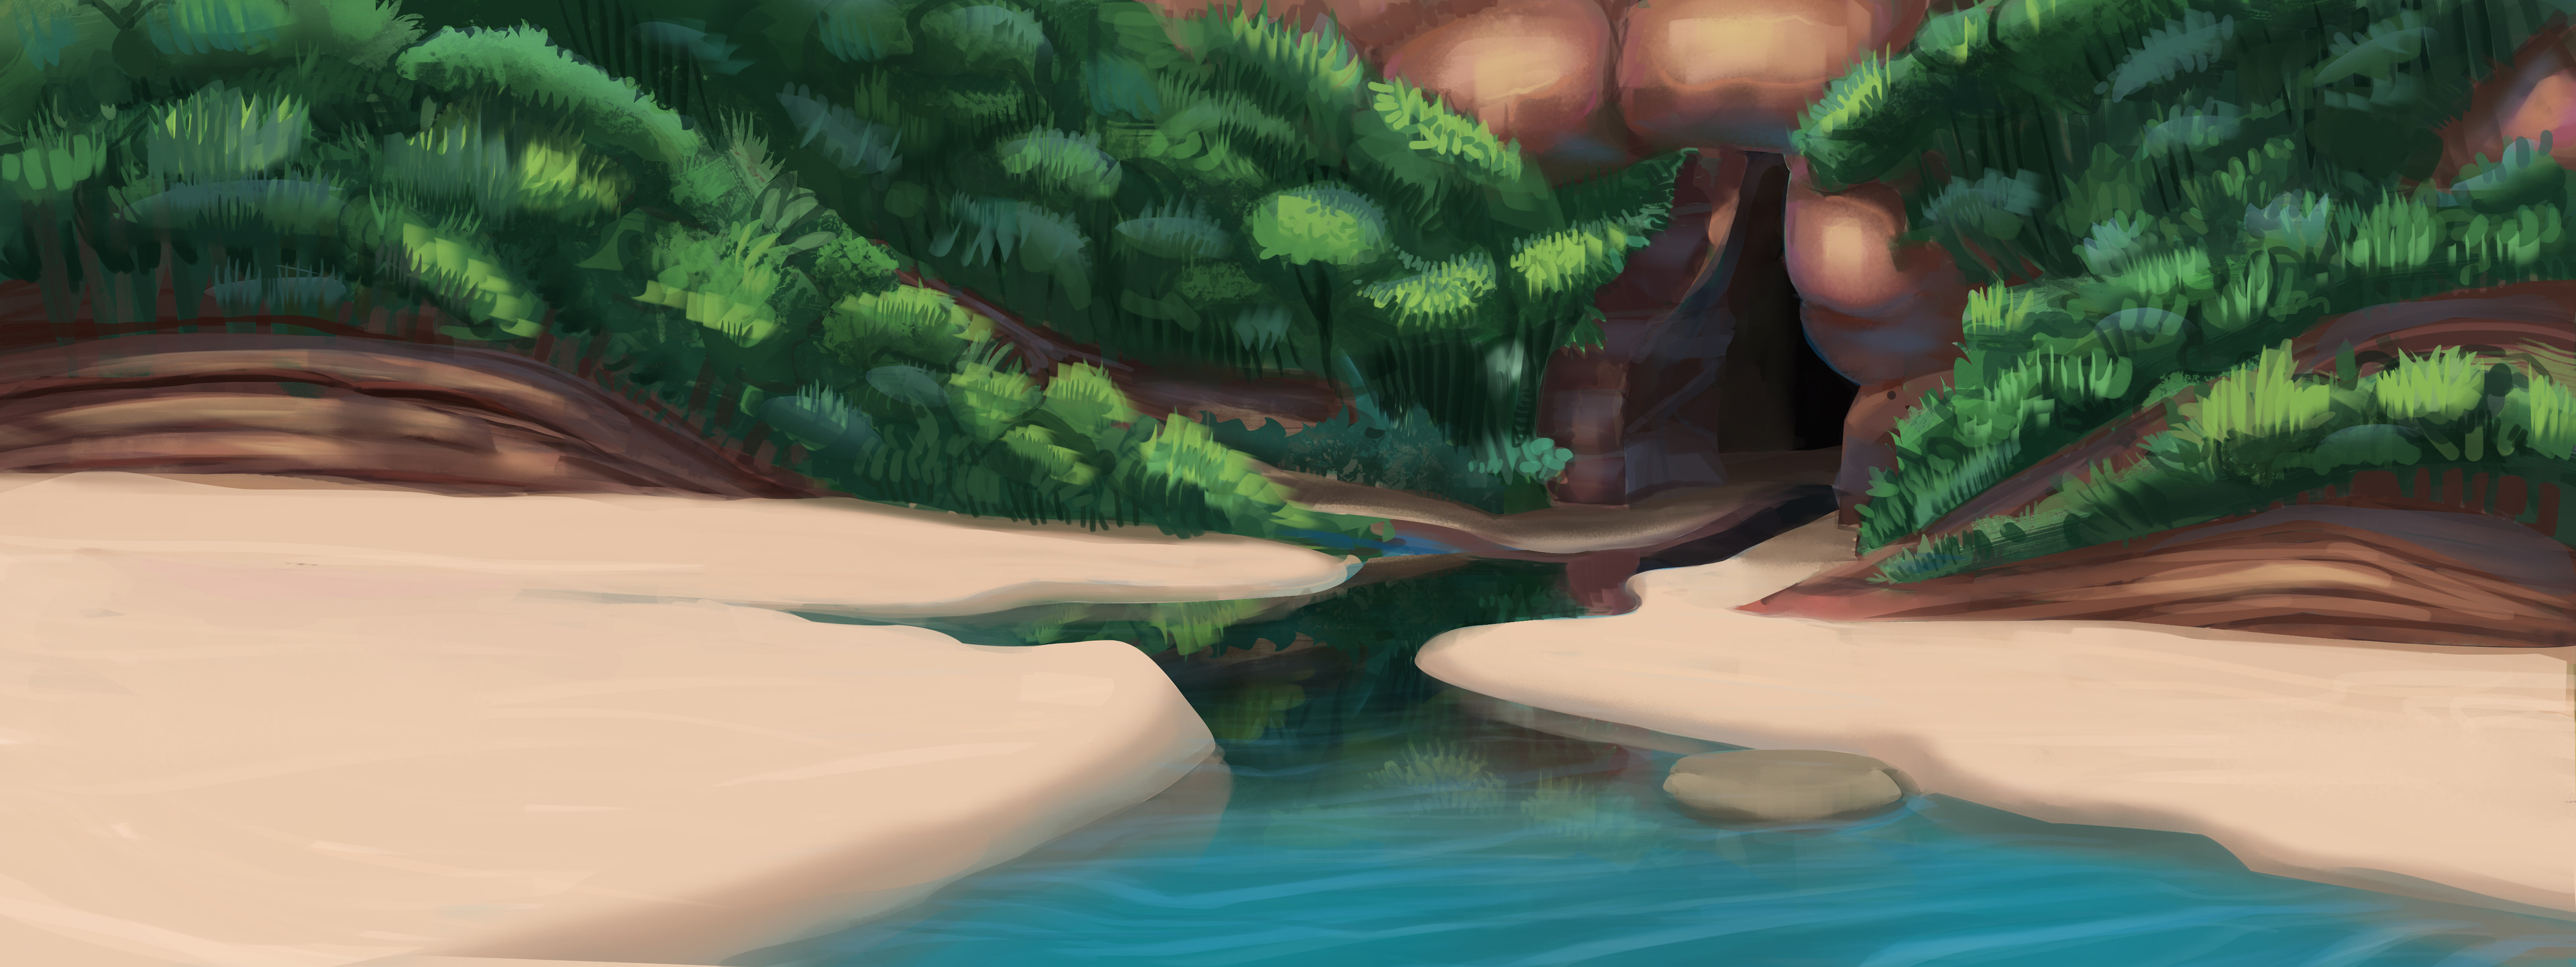 Environment design done in my spare time as a colour practice.